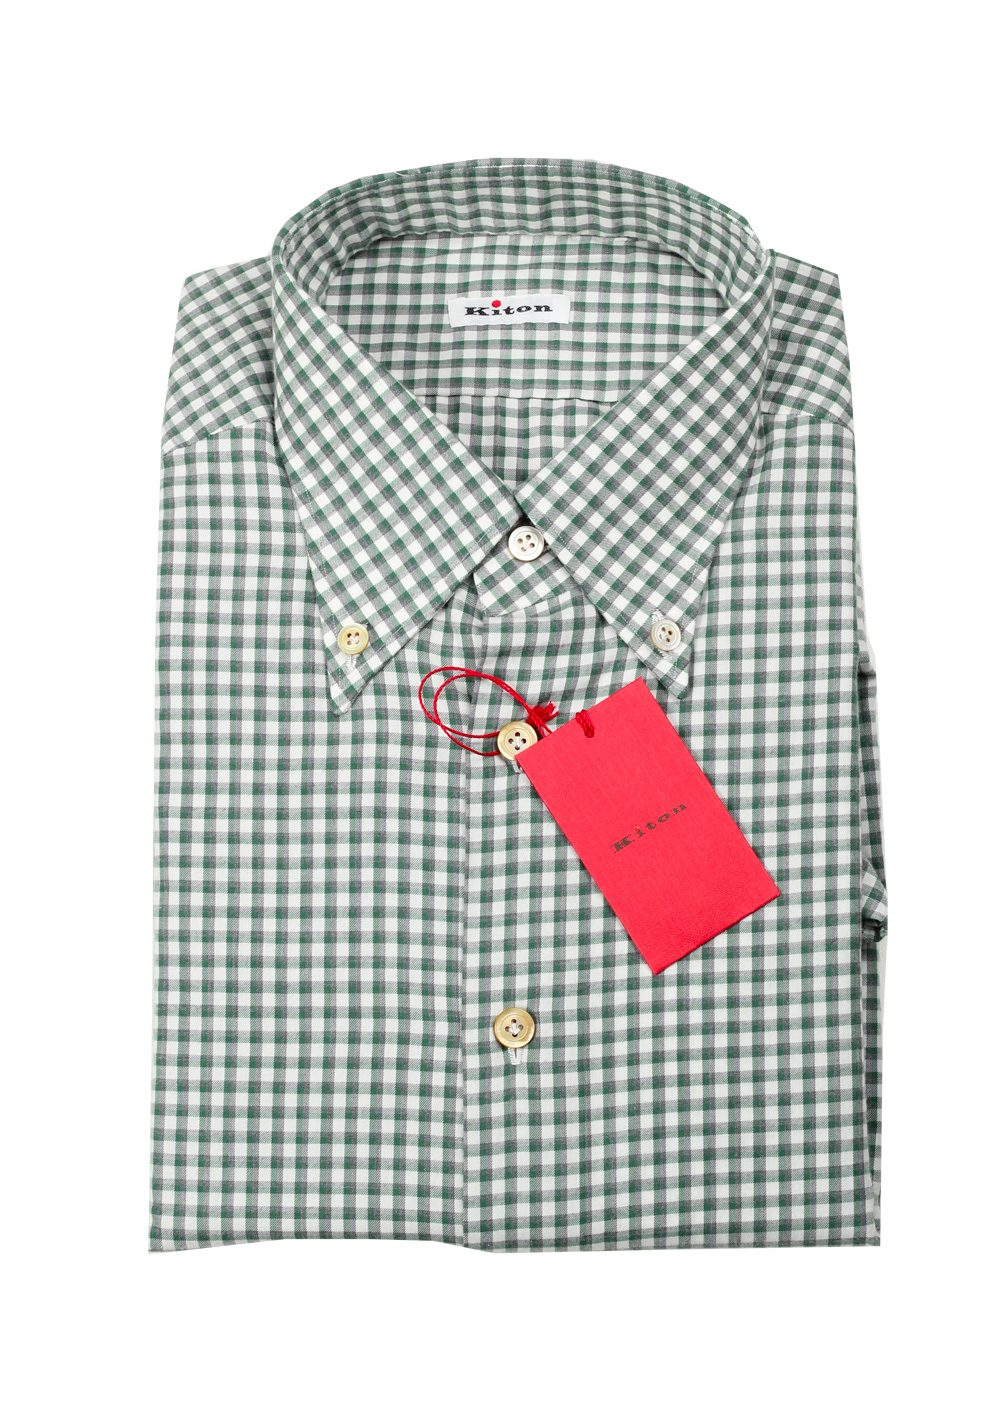 Kiton Checked White Green Gray Shirt 42 / 16,5 U.S. | Costume Limité